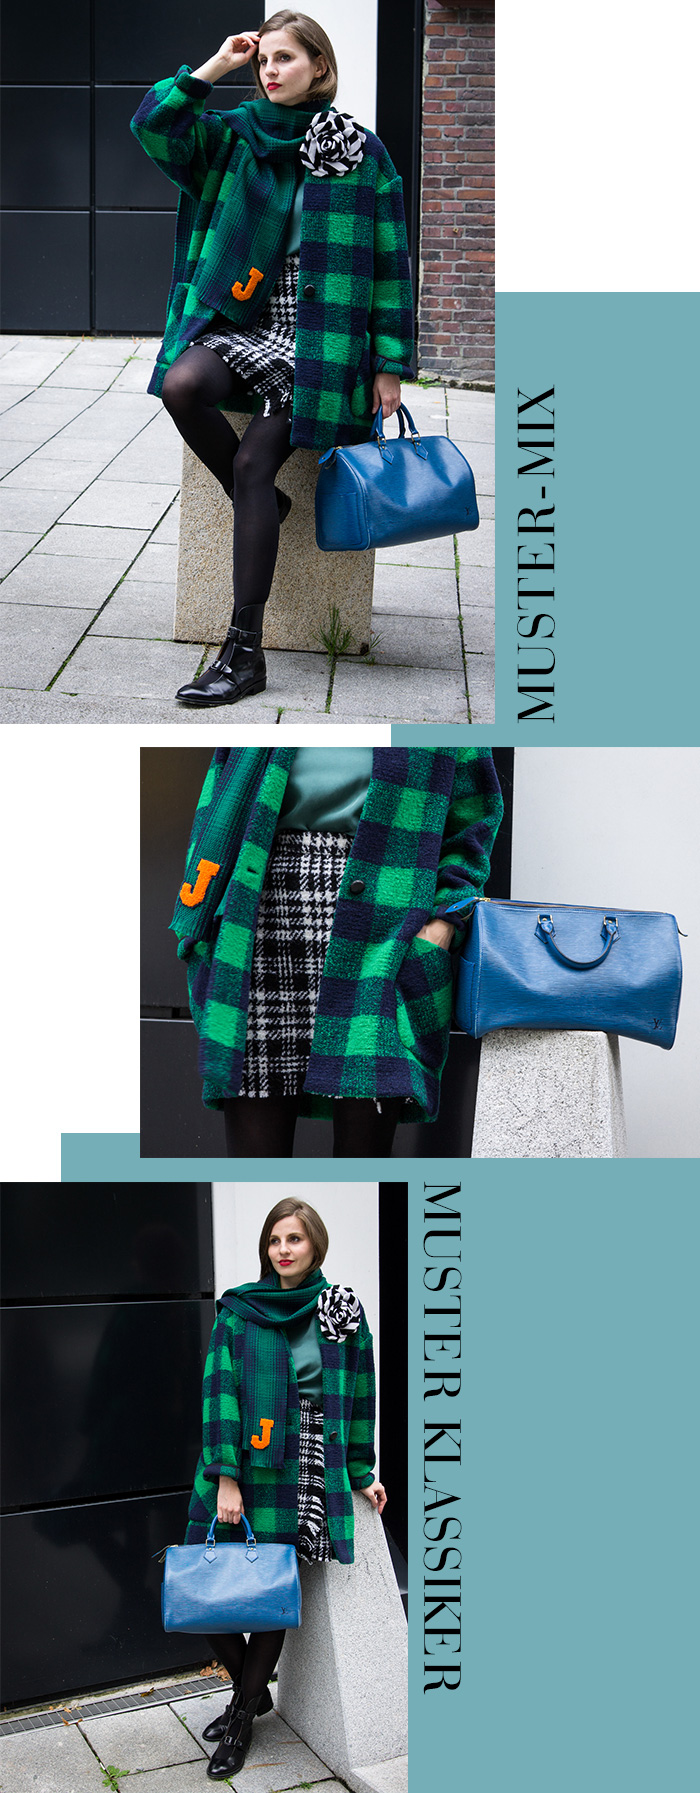 New Arrivals for Autumn - Herbstmode 2017 - Muster Mix